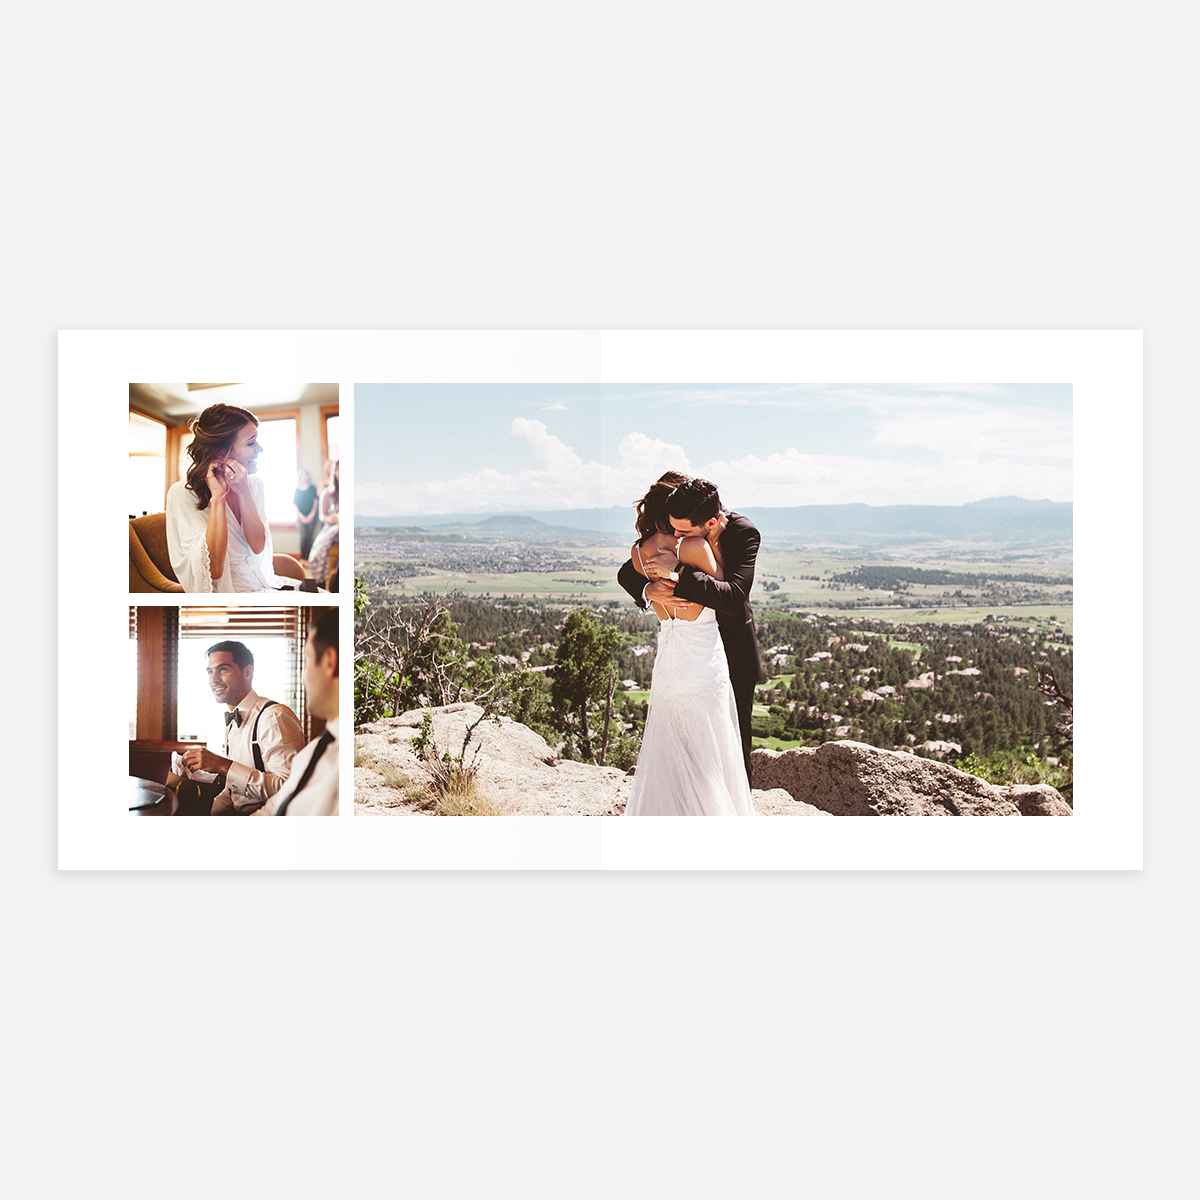 Duo Square Large Landscape layout in Wedding Layflat Album